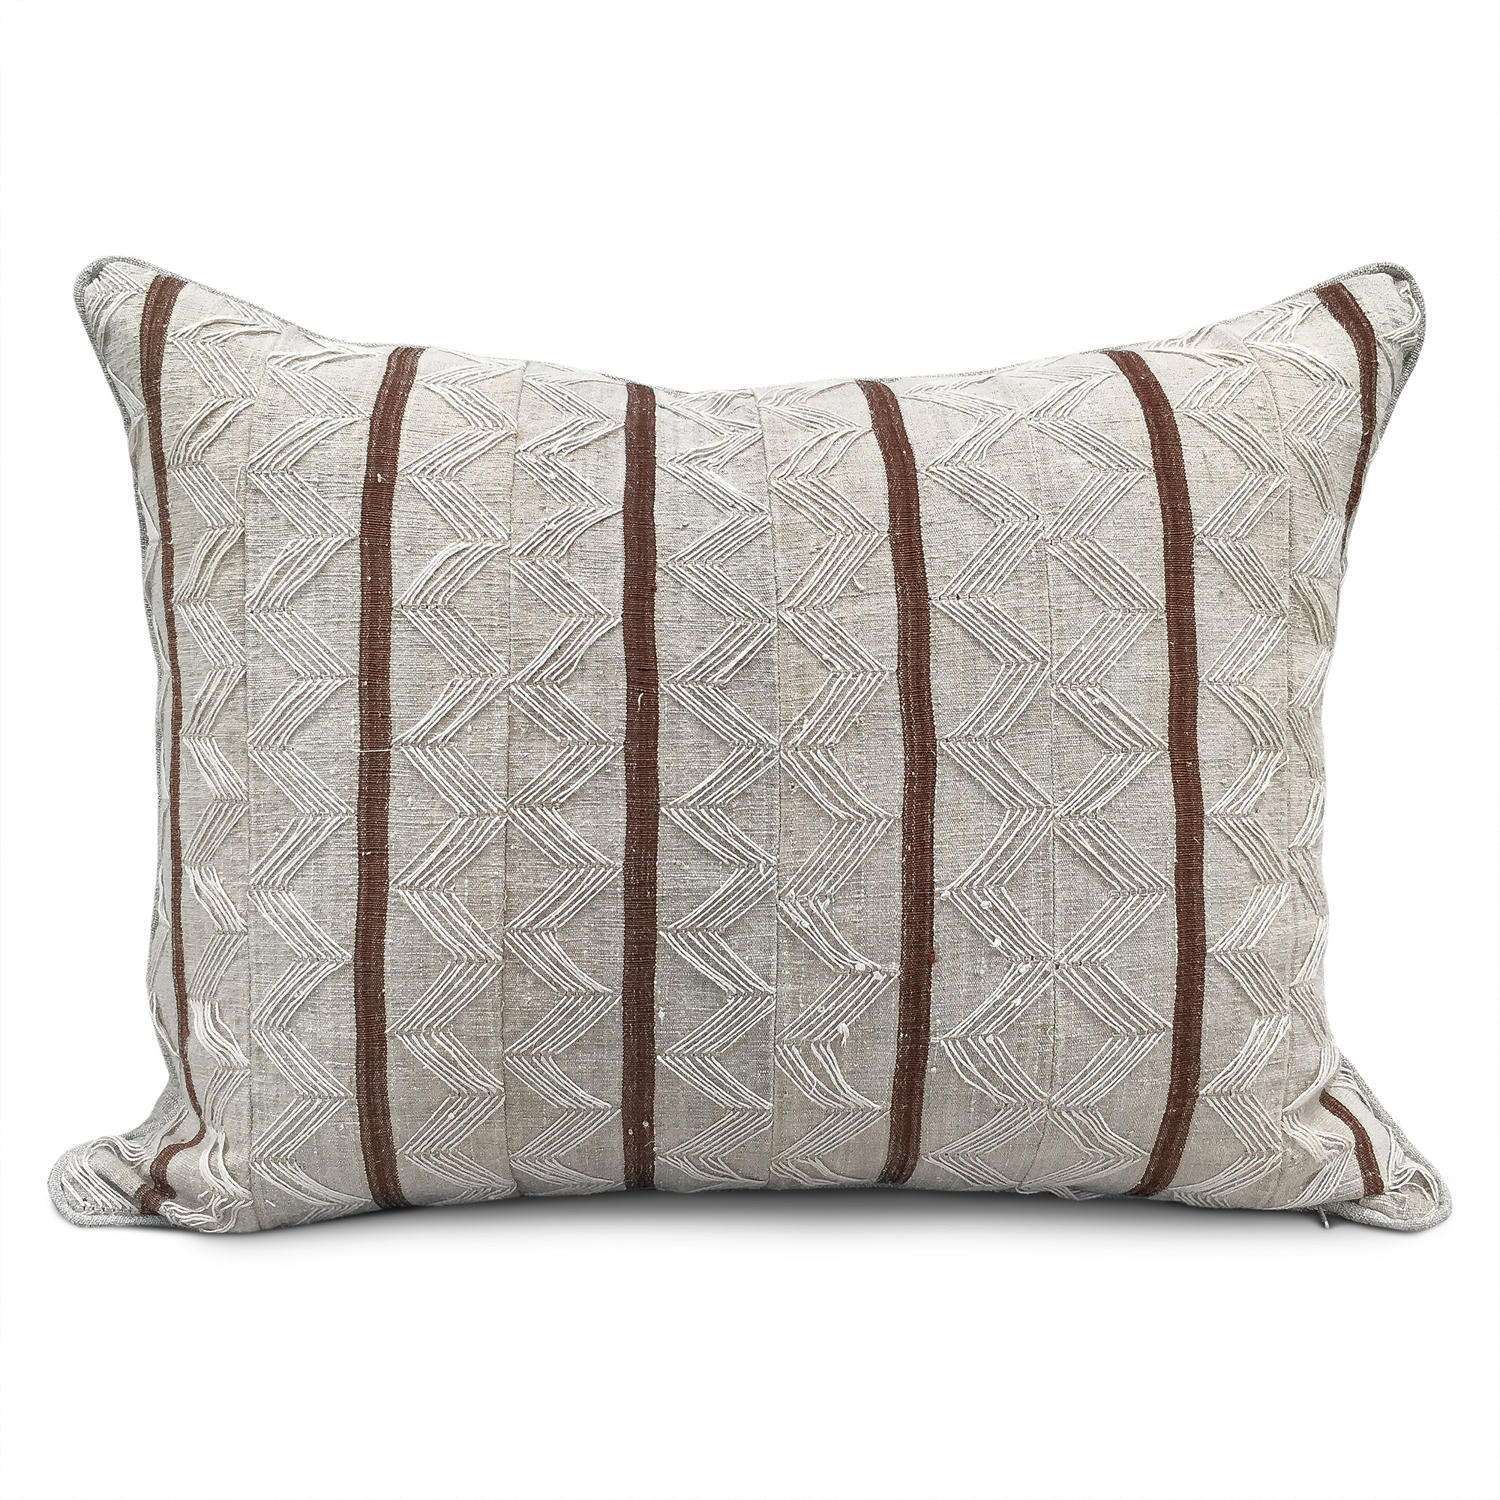 Yoruba Zig Zag Cushions with Brown Stripe